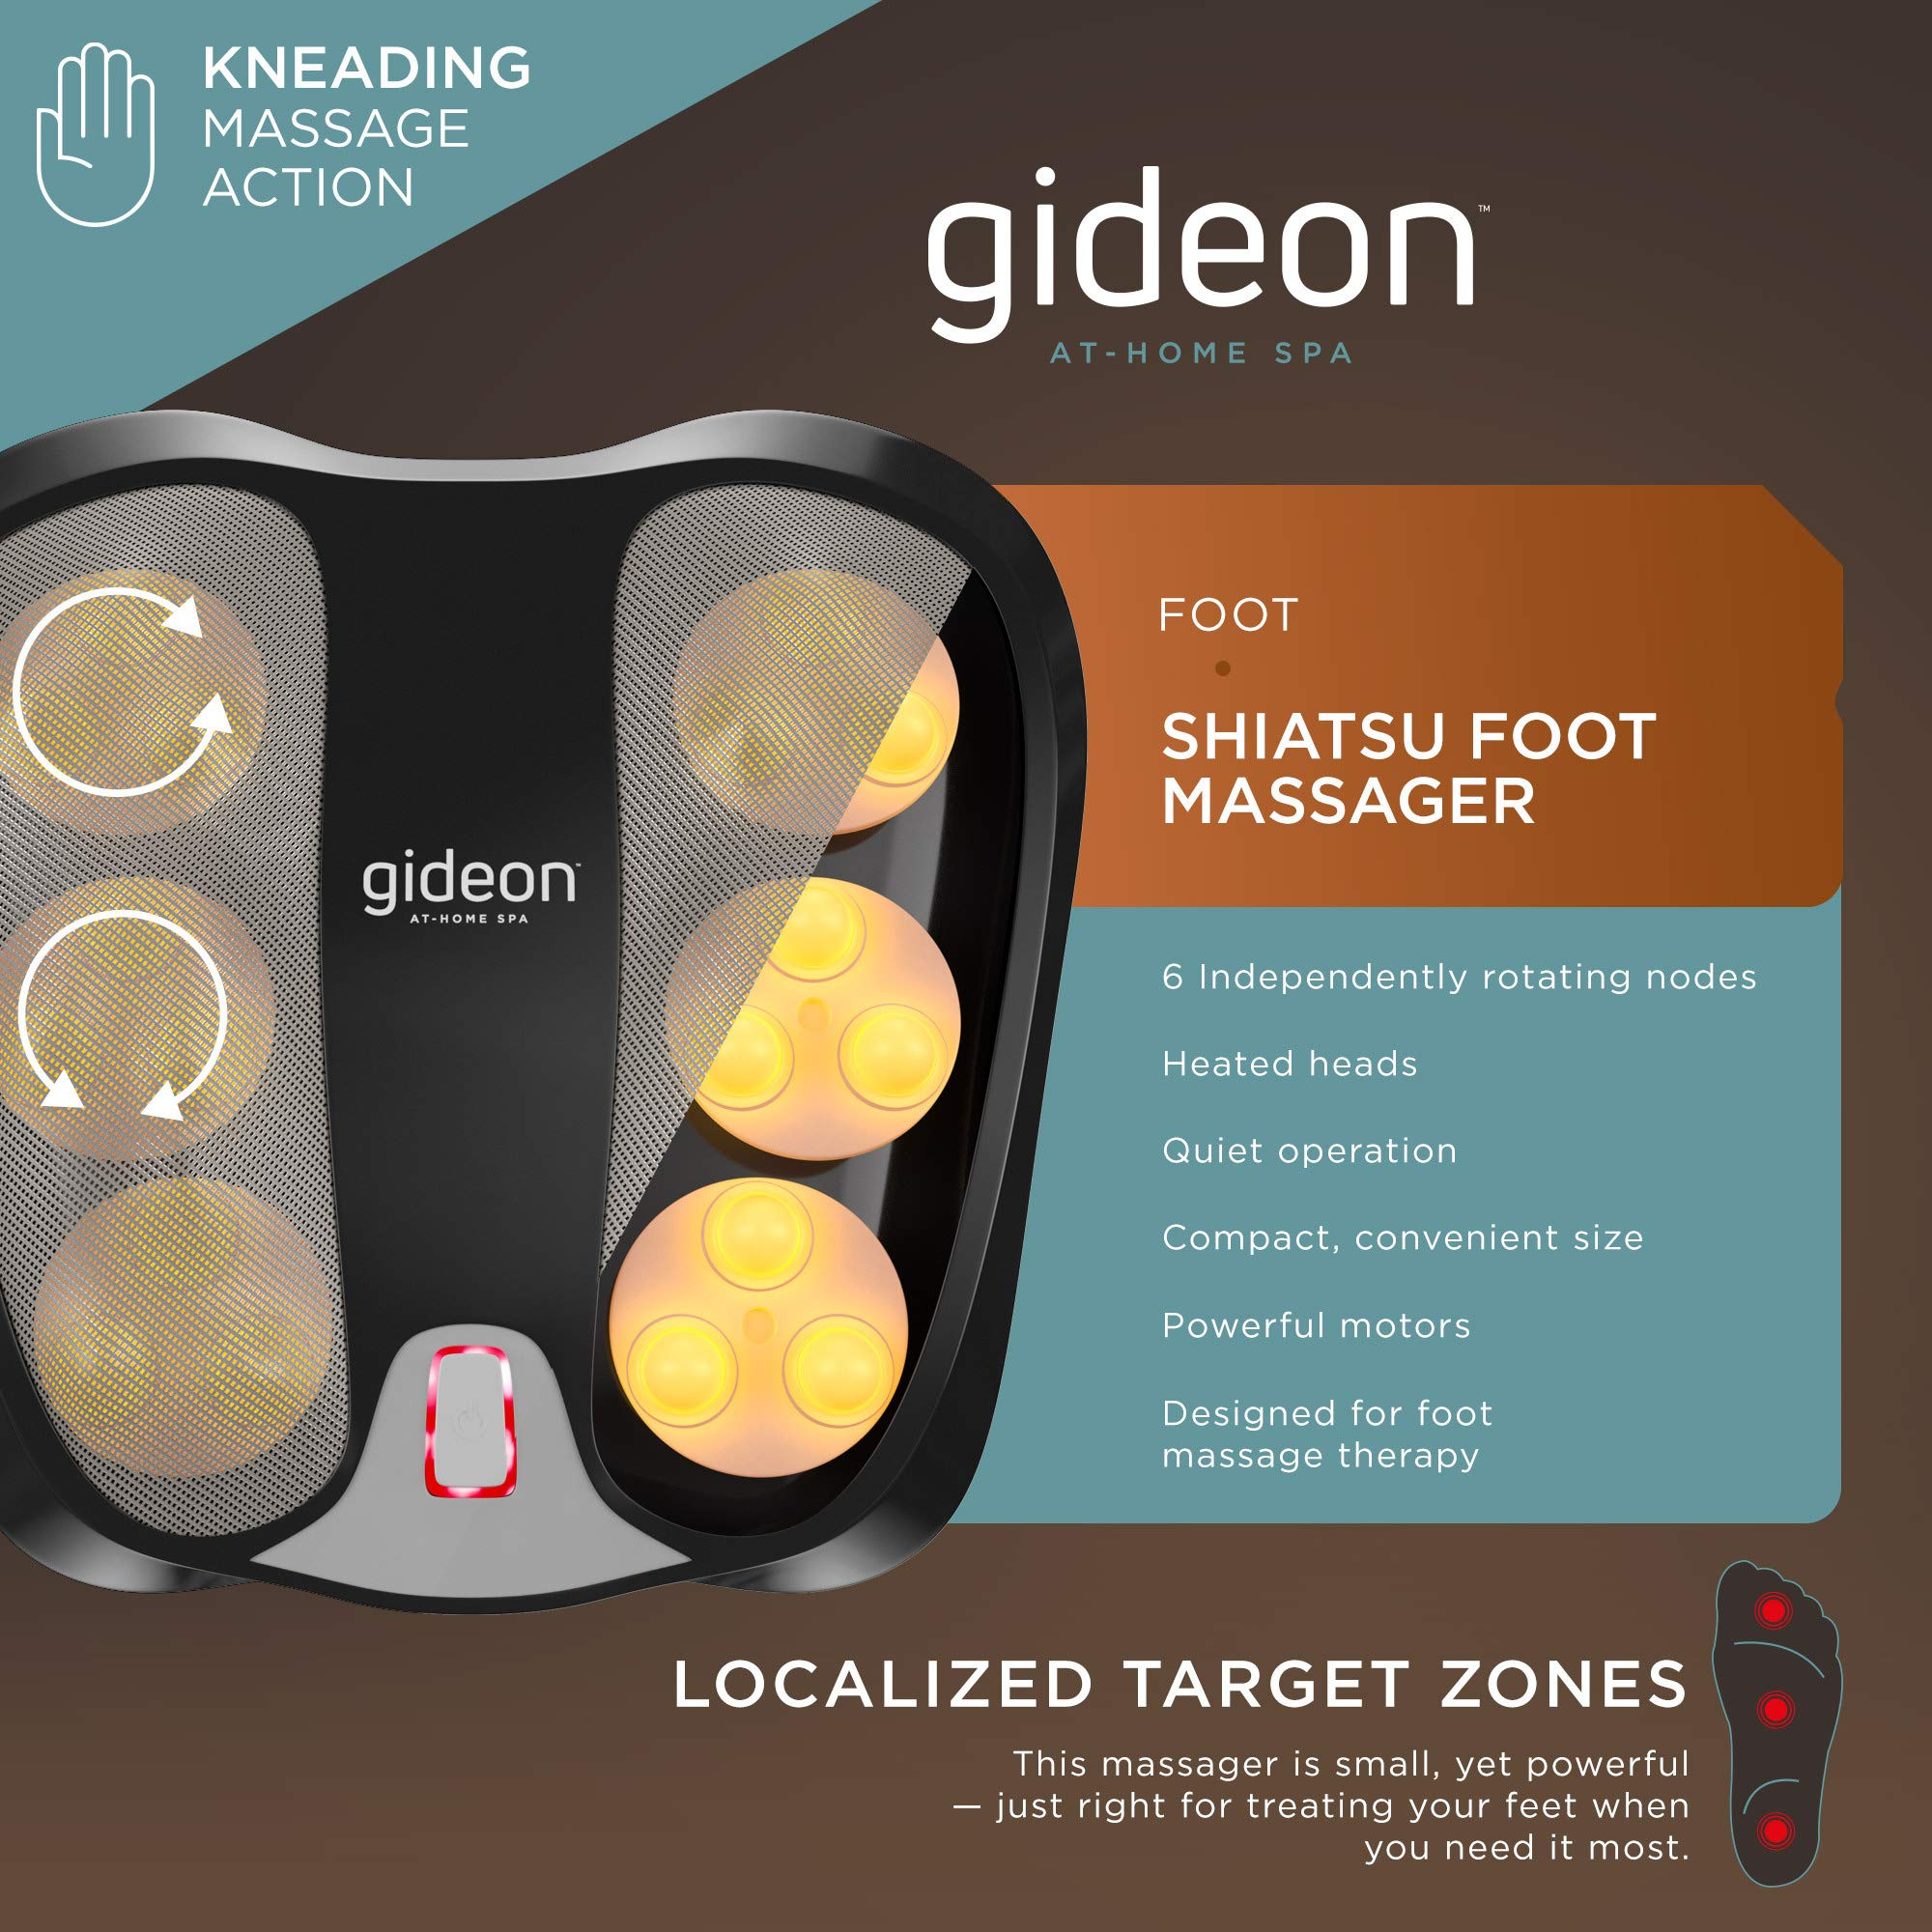 Gideon Shiatsu Foot Massager with Soothing Heat - 18 Deep Kneading Massaging Nodes - Perfect for Relaxation, Plantar Fasciitis, Heal Spur and Other Foot Pain Relief for Home & Office Use